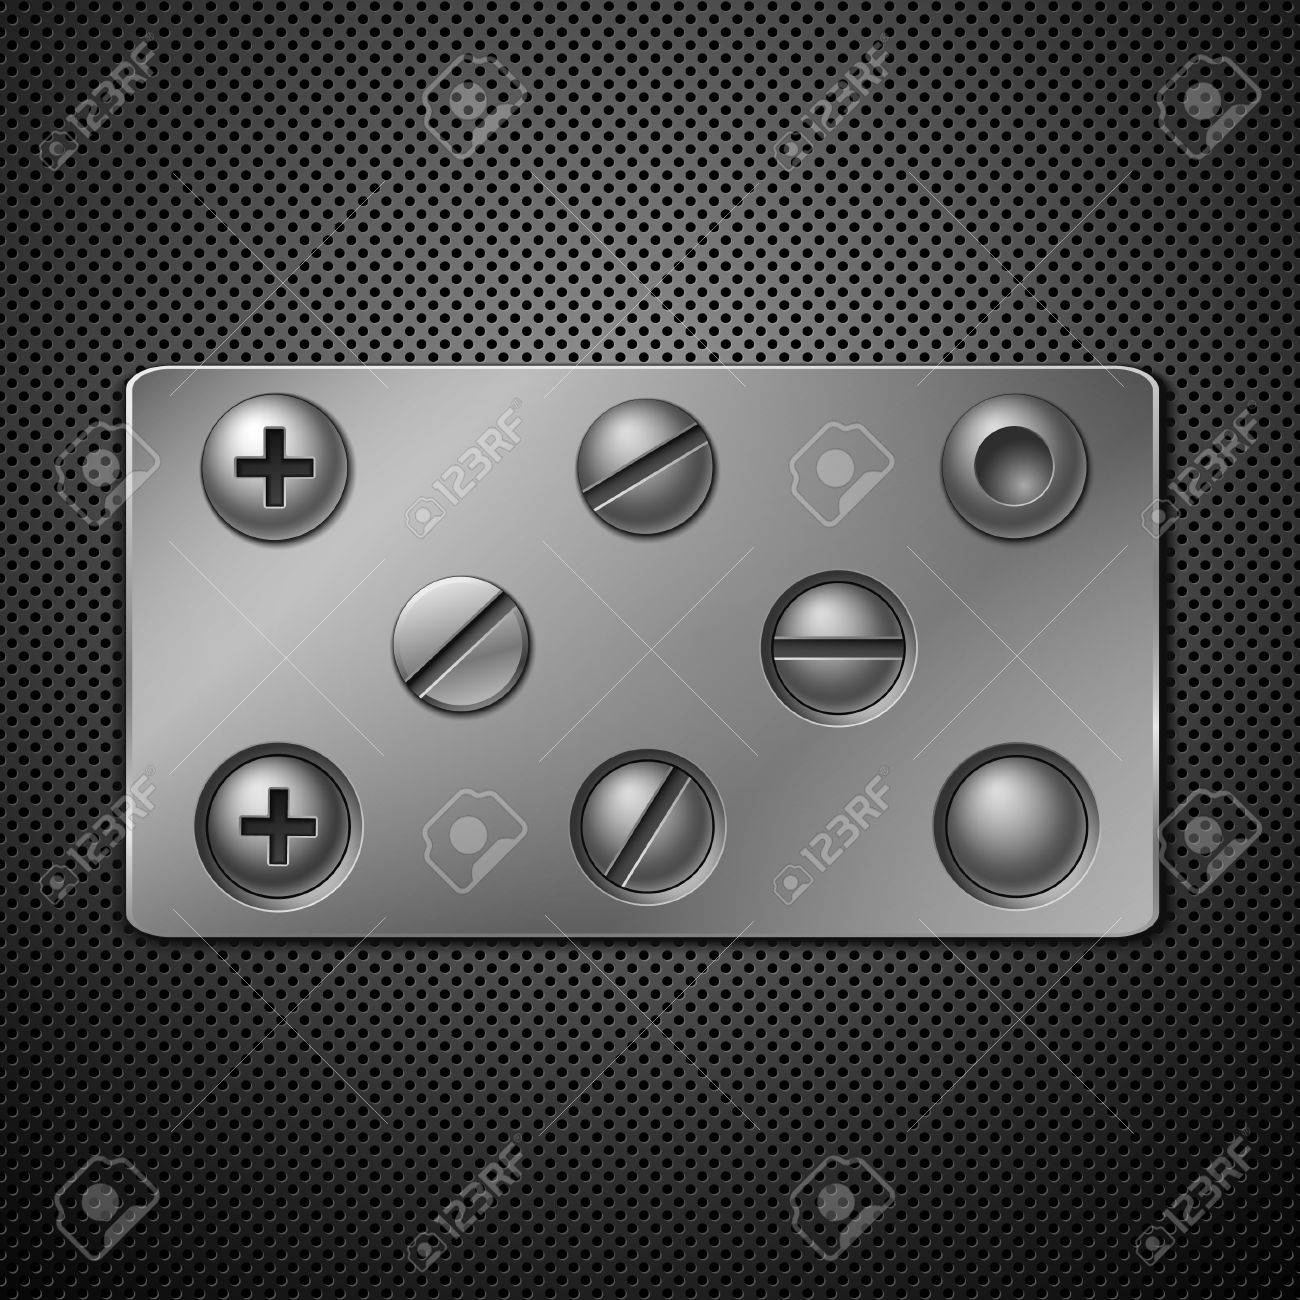 Screws and rivets. Elements for your design. Vector illustration. Stock Vector - 8880154